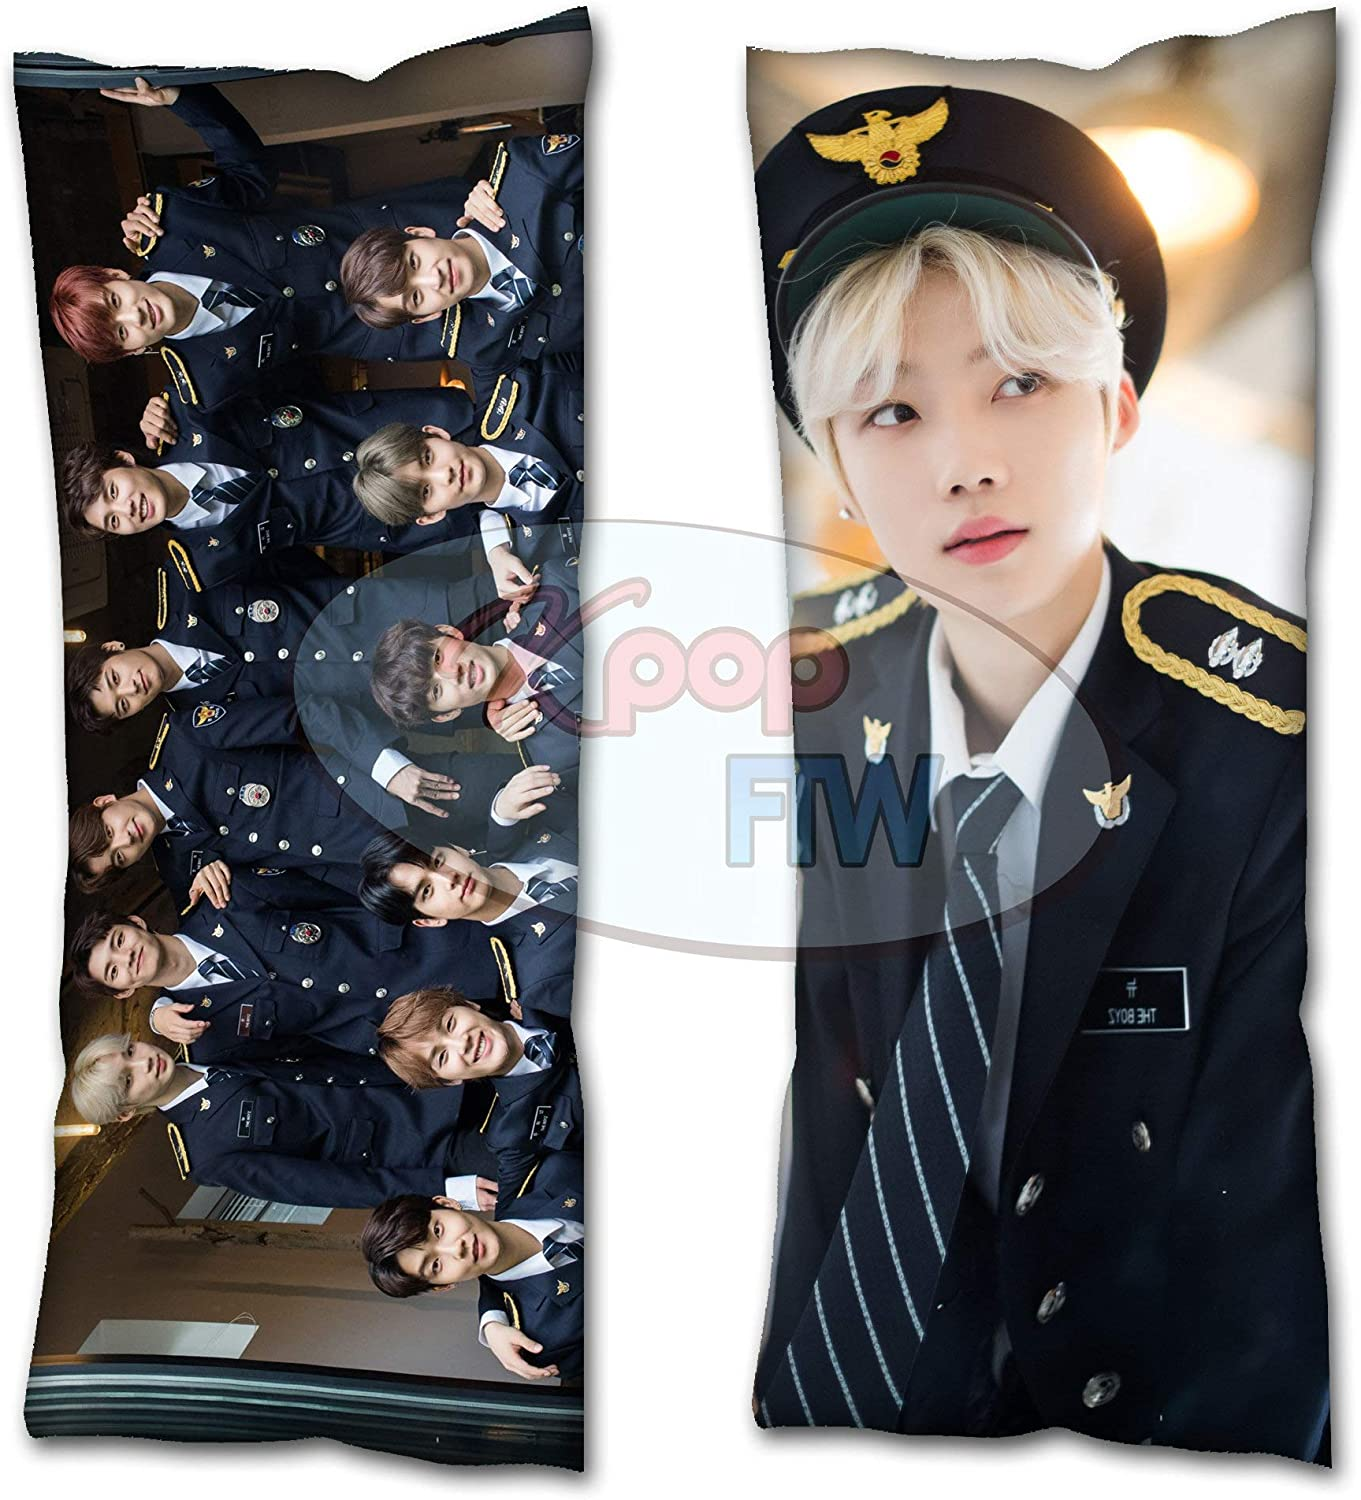 Cosplay-FTW Kpop The Boyz New Body Pillow Right Here Style 2 Cover Peach Skin Cotton Polyester Blend 40cm x 100cm Set of 1, CASE ONLY